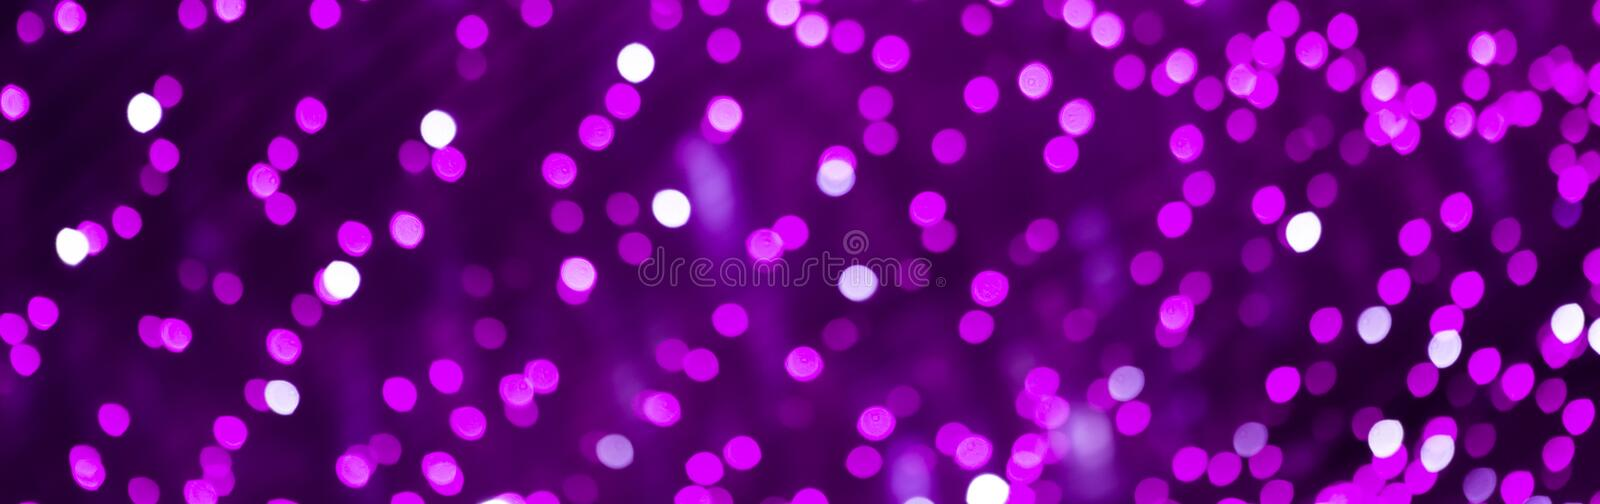 Beautiful Bokeh Purple lilac gradient Background. royalty free stock photography